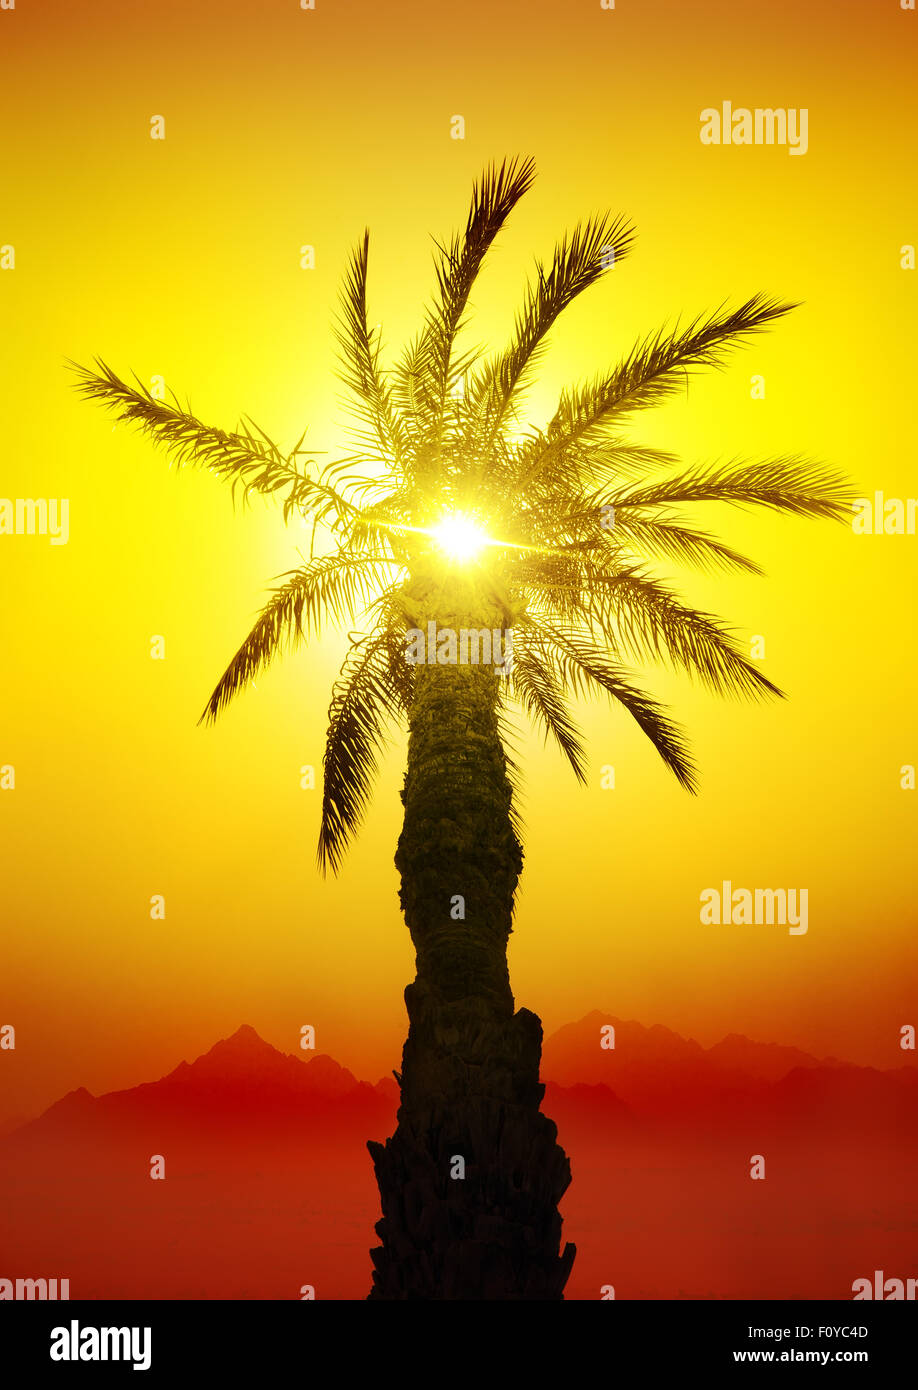 Palm in desert mountains at the sunset Stock Photo